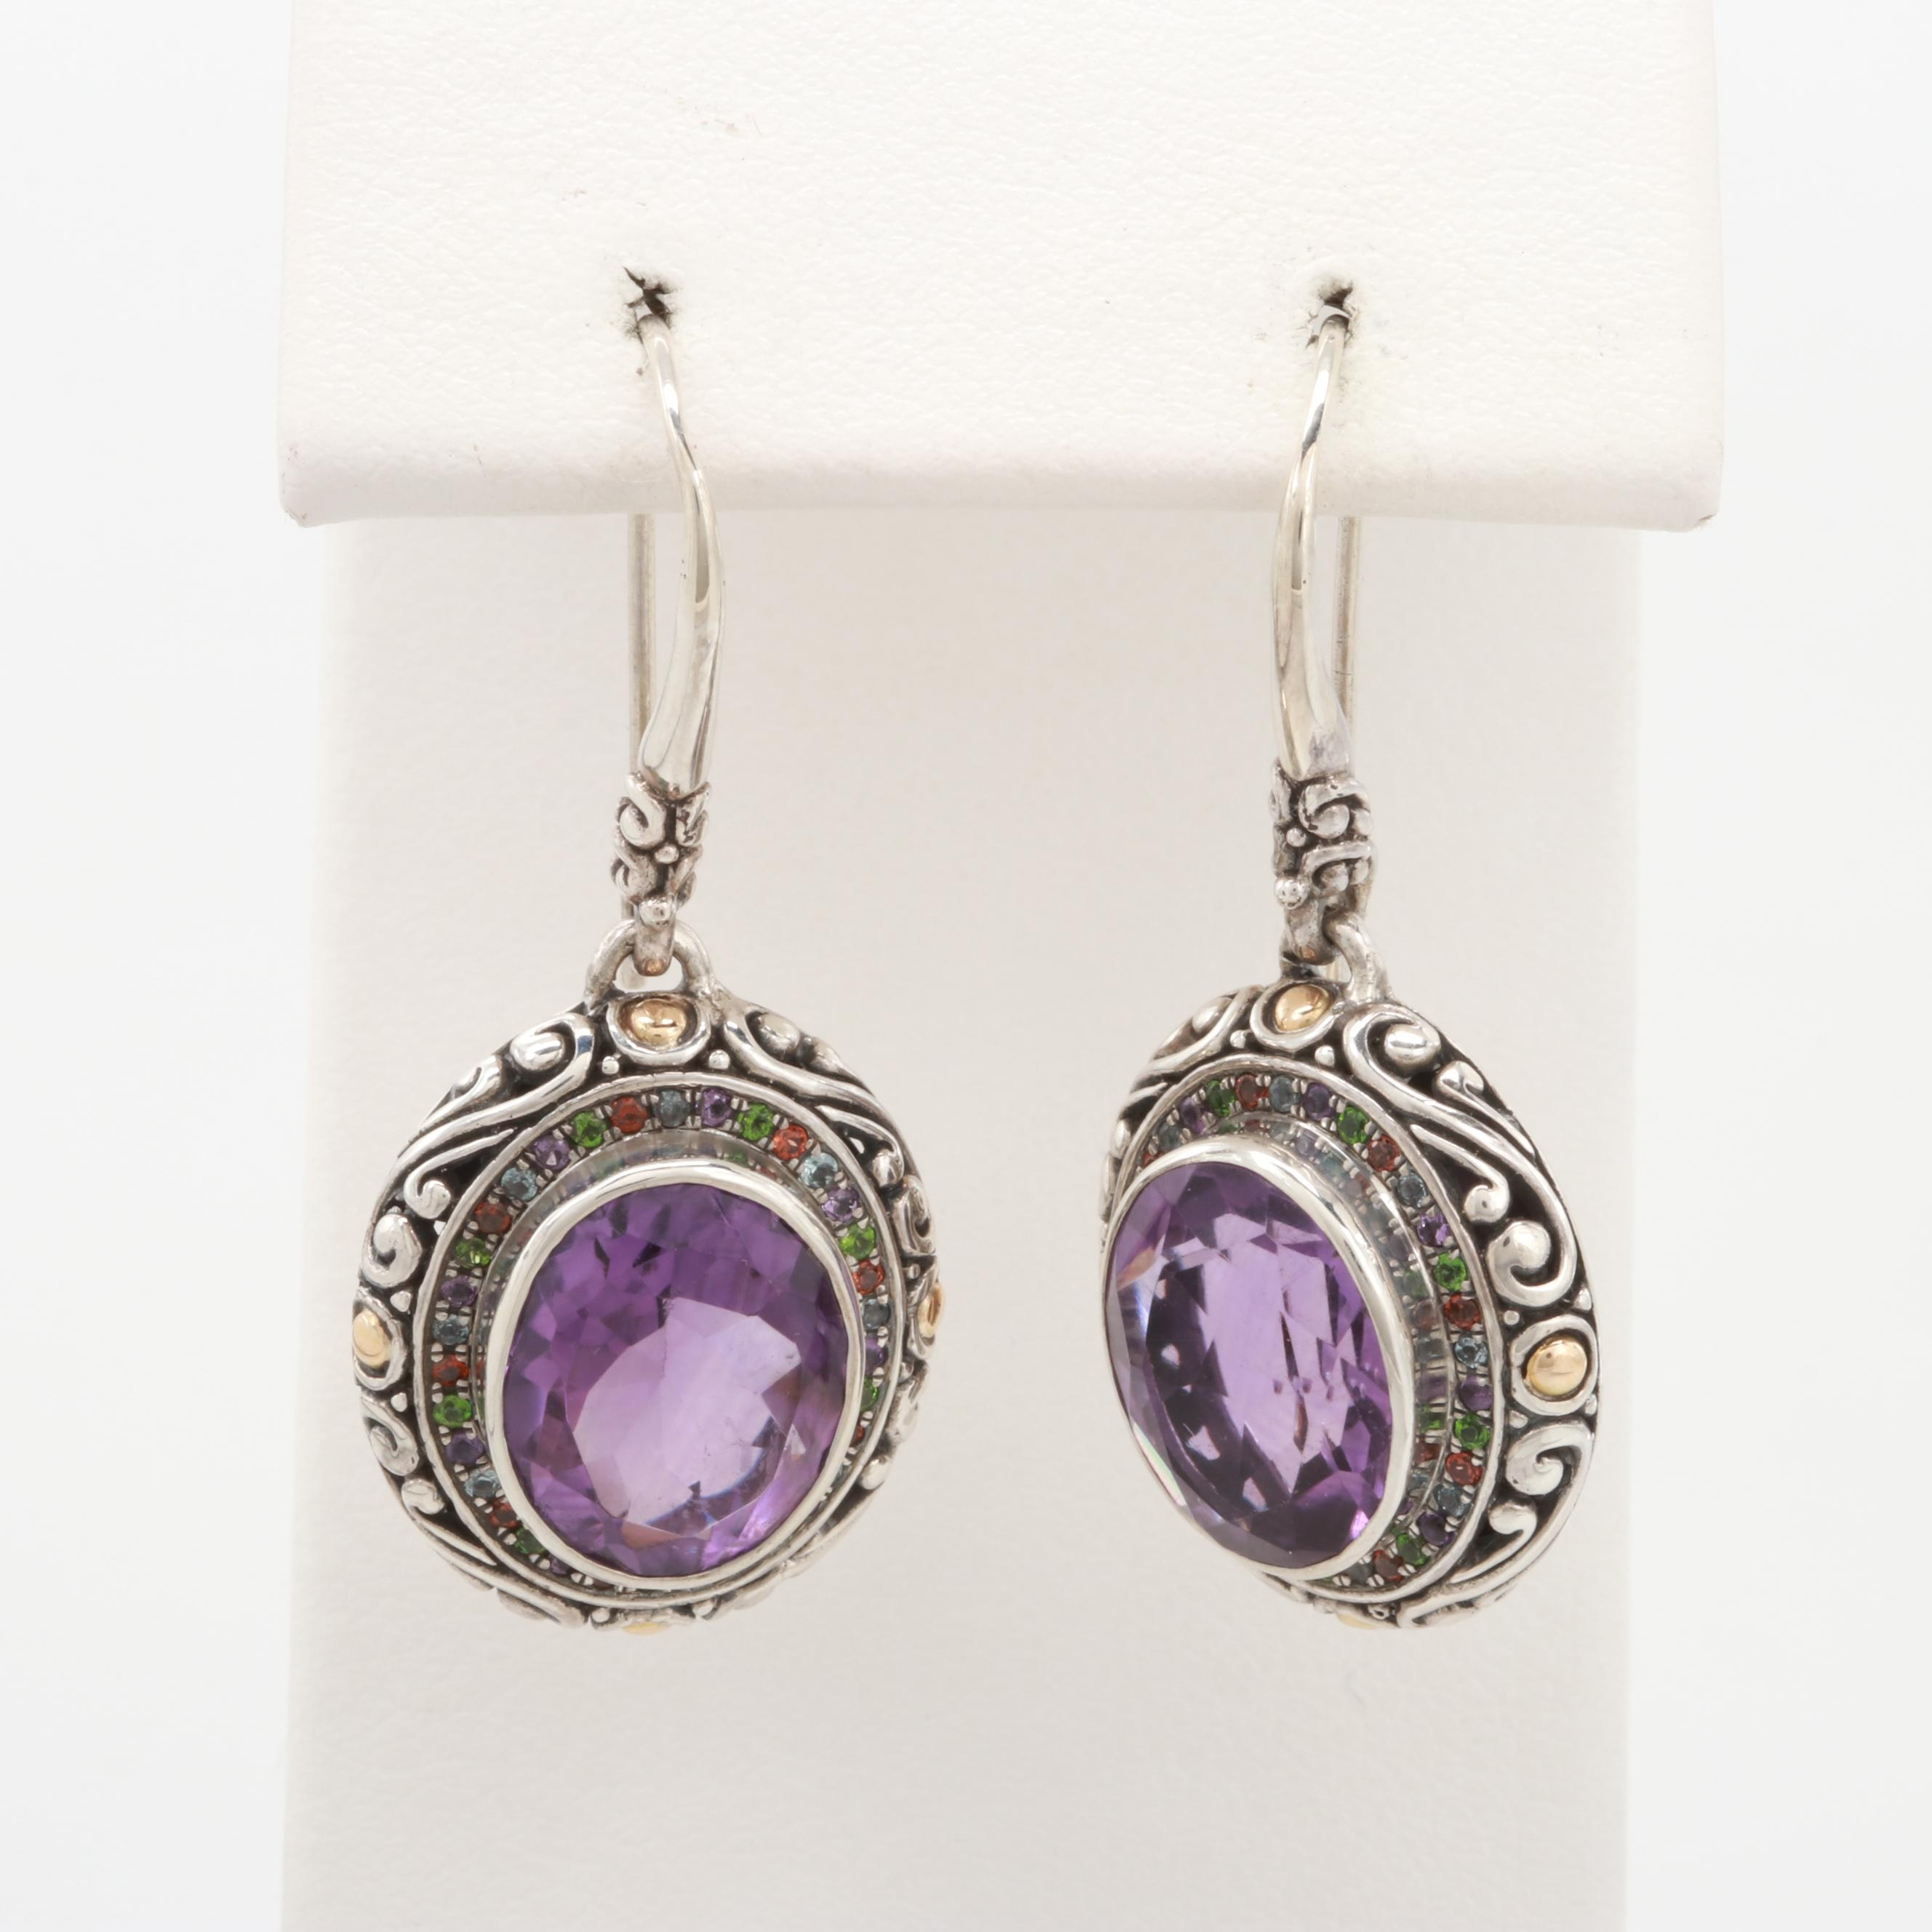 Robert Manse Sterling Amethyst and Gemstone Earrings with 18K Yellow Gold Accent